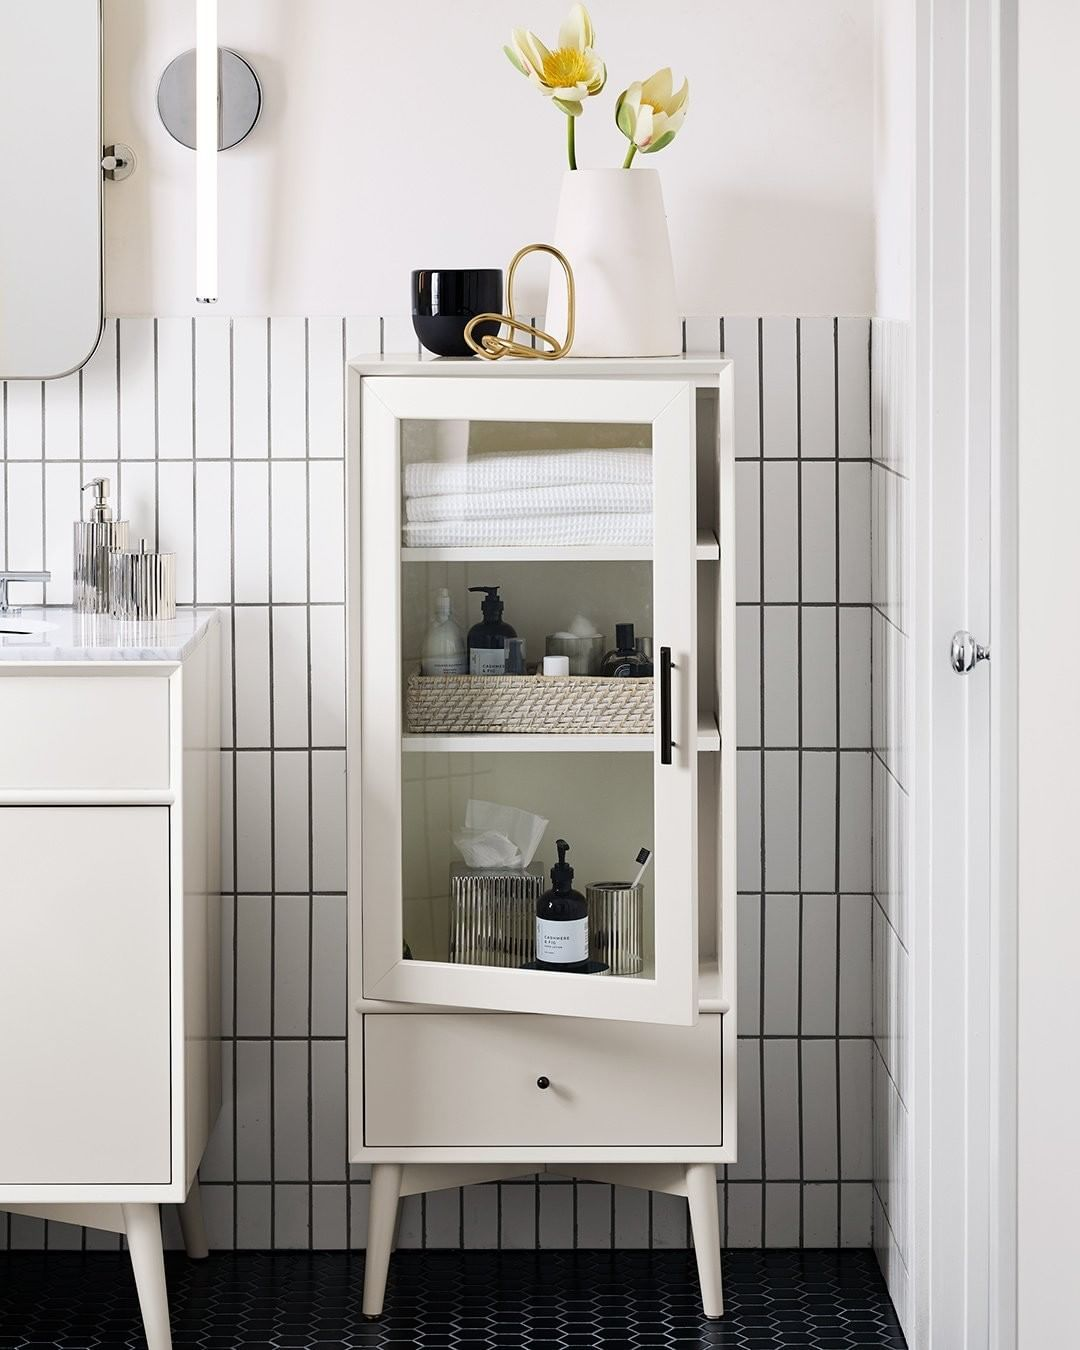 West Elm Furniture Decor On Instagram Selfcare Starts In The Bathroom Our New Fai Mid Century Bathroom Bathroom Furniture Storage Bathroom Furniture [ 1350 x 1080 Pixel ]